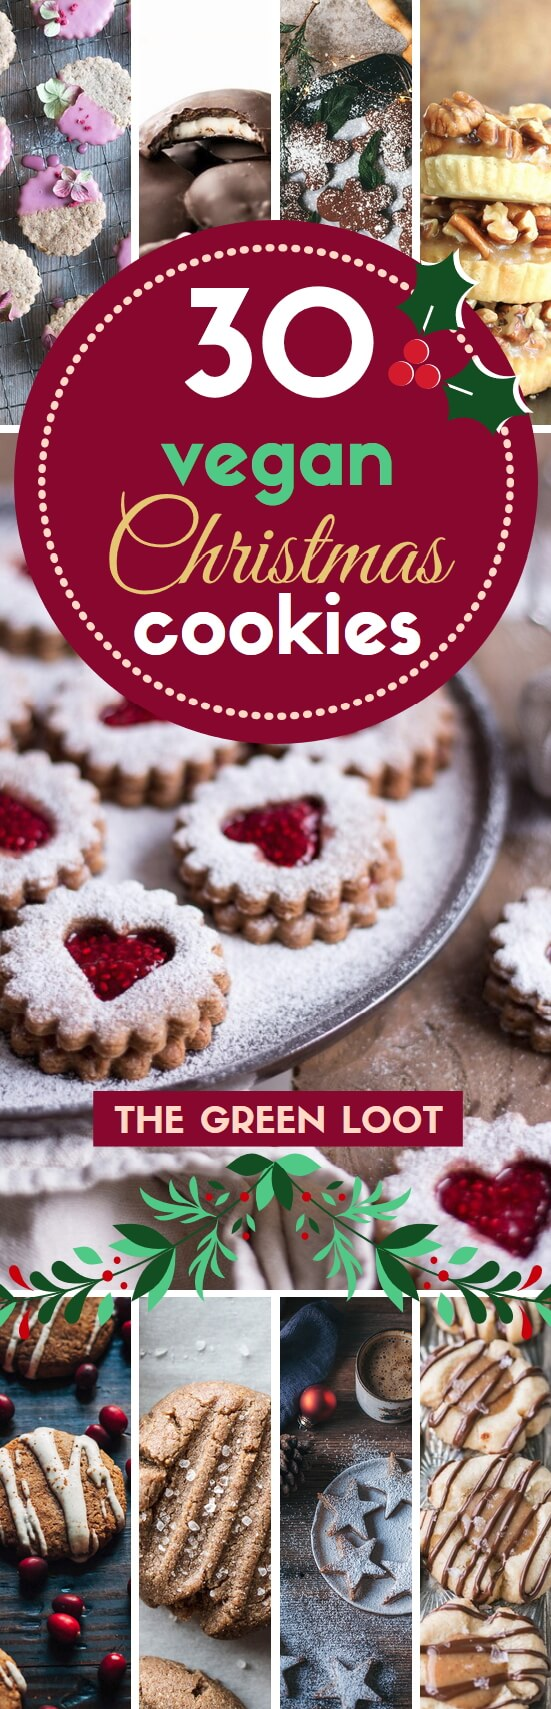 We have collected the absolute best, most delicious and divine vegan X-mas cookies, that are easy and even healthy! Enjoy these finger-licking yummies! See our best vegan Christmas desserts/treats list too! Happy Holidays! | The Green Loot #vegan #Christmas